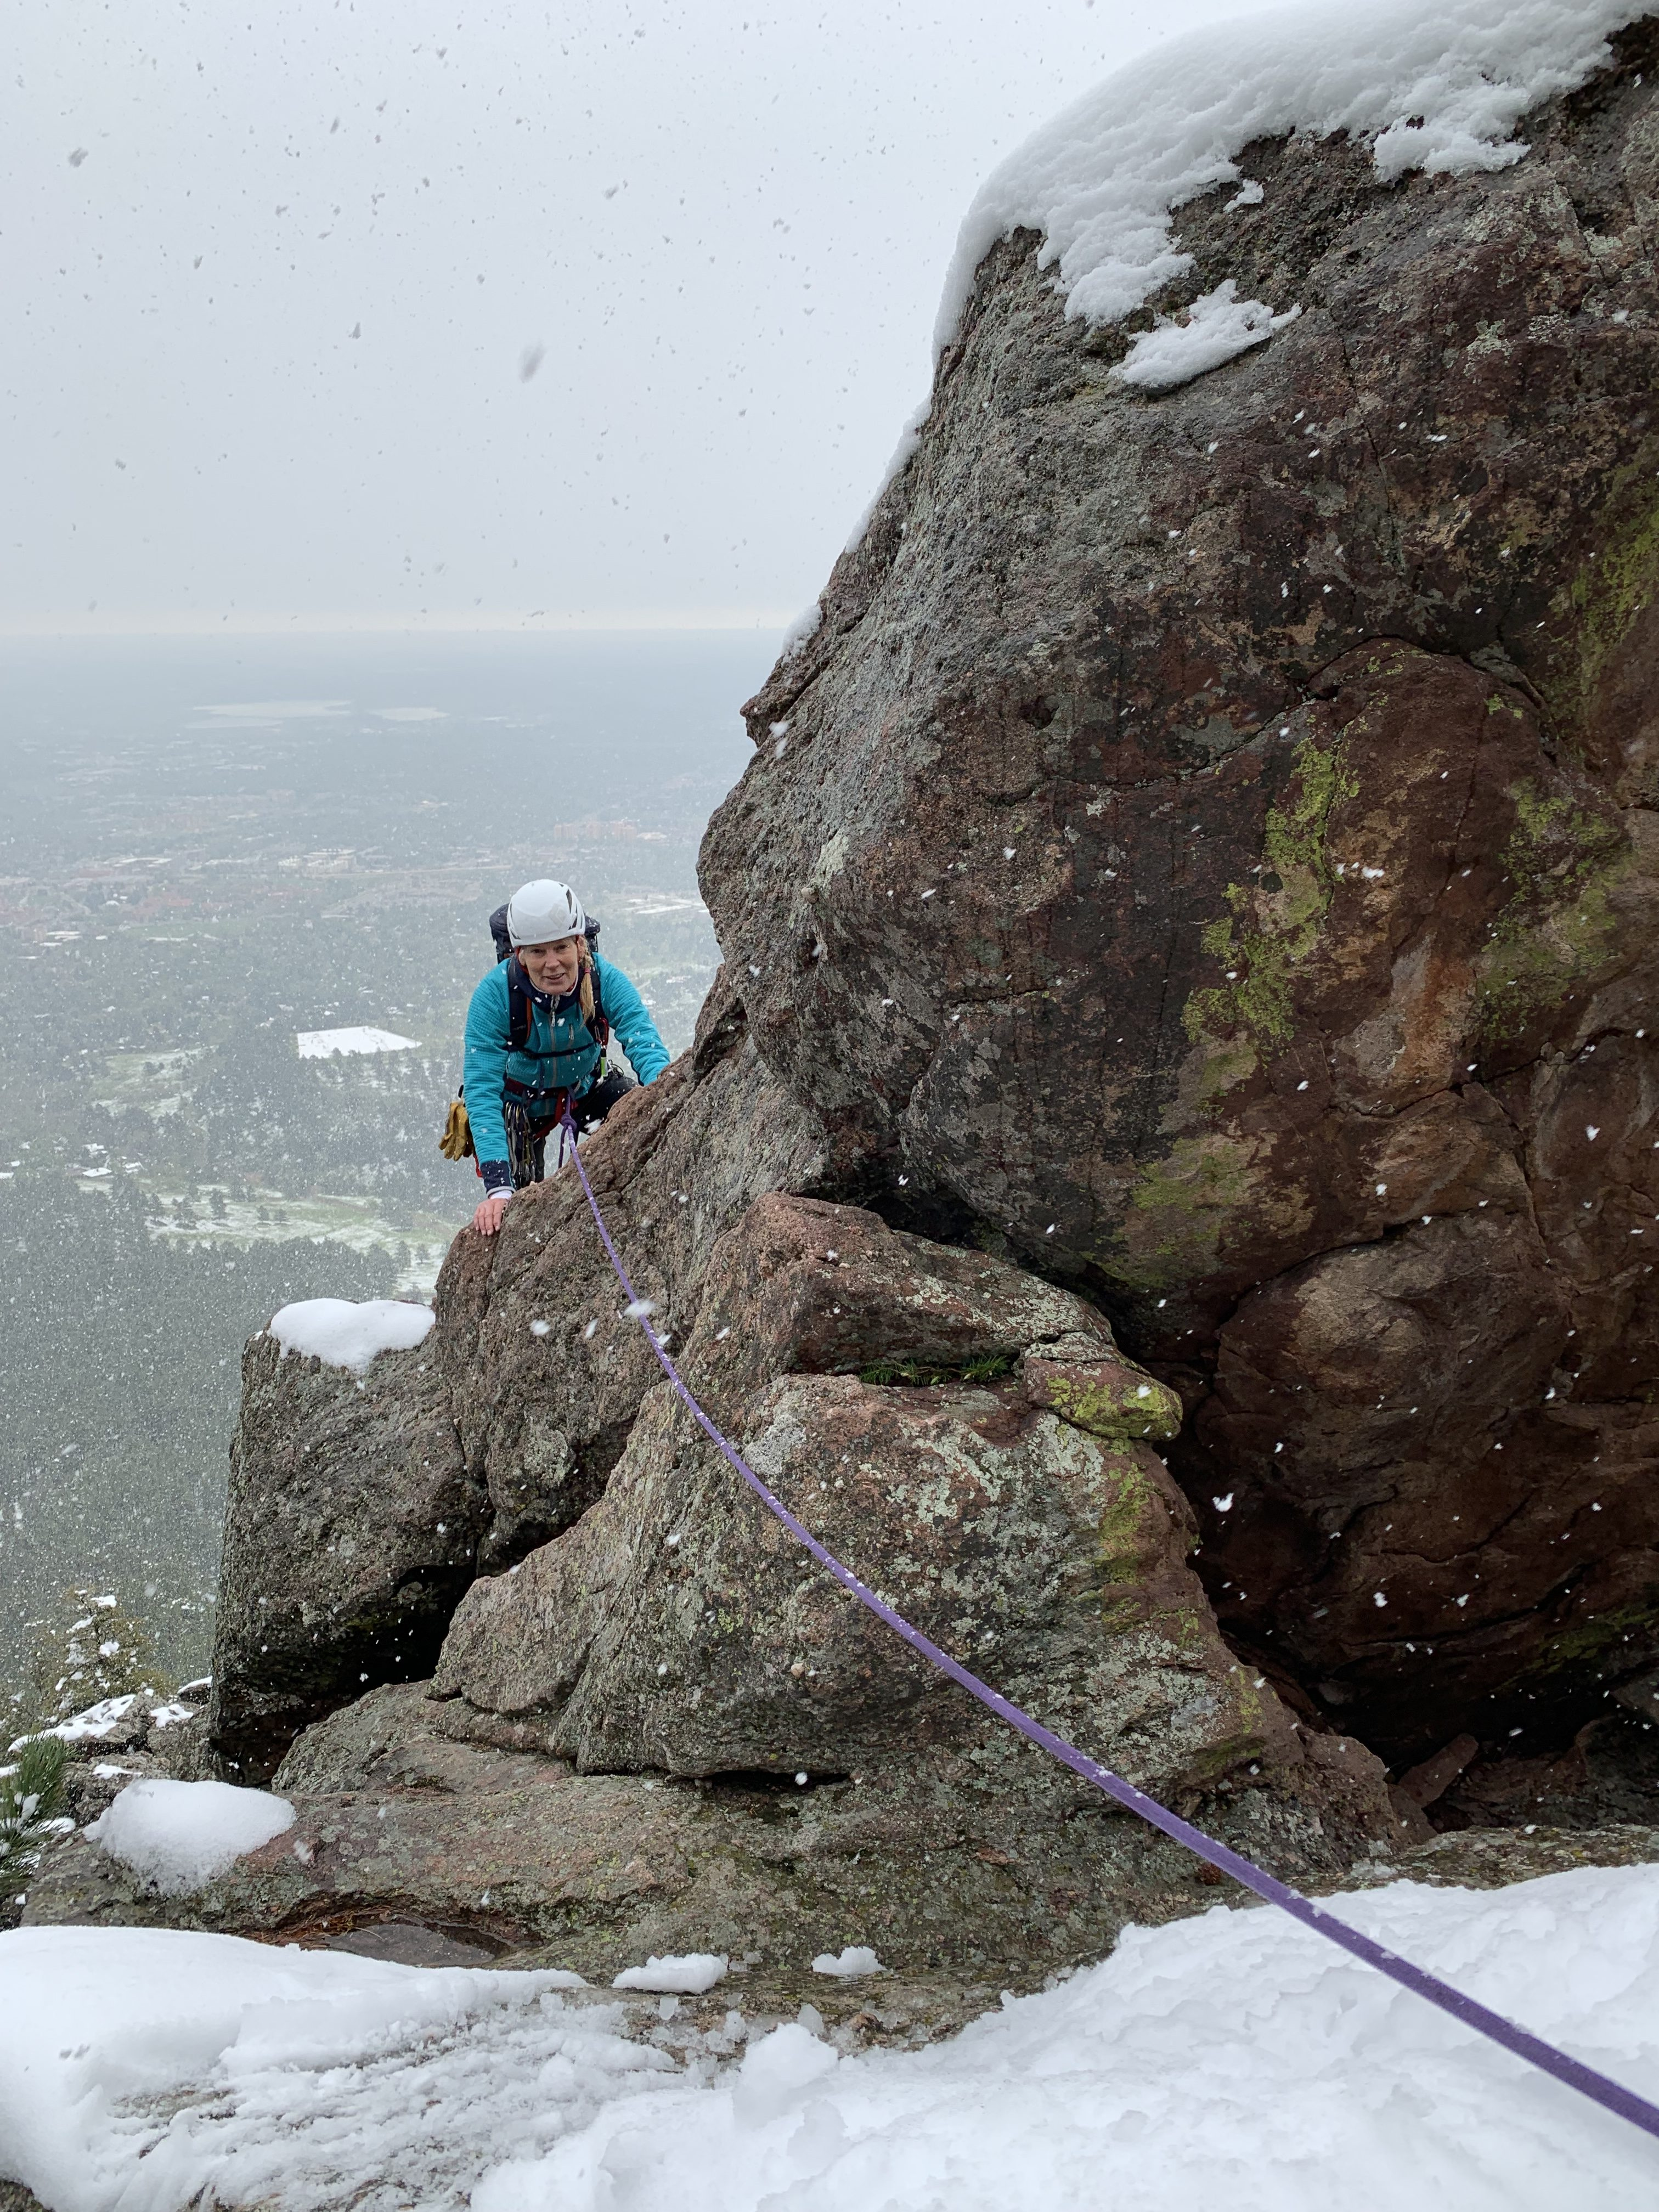 The Fusion Nano IX dual color in action. Chicks alumna, Kristy Lamore, 2nd Flatiron, Boulder, Colorado. May snowstrom. ©Karen Bockel